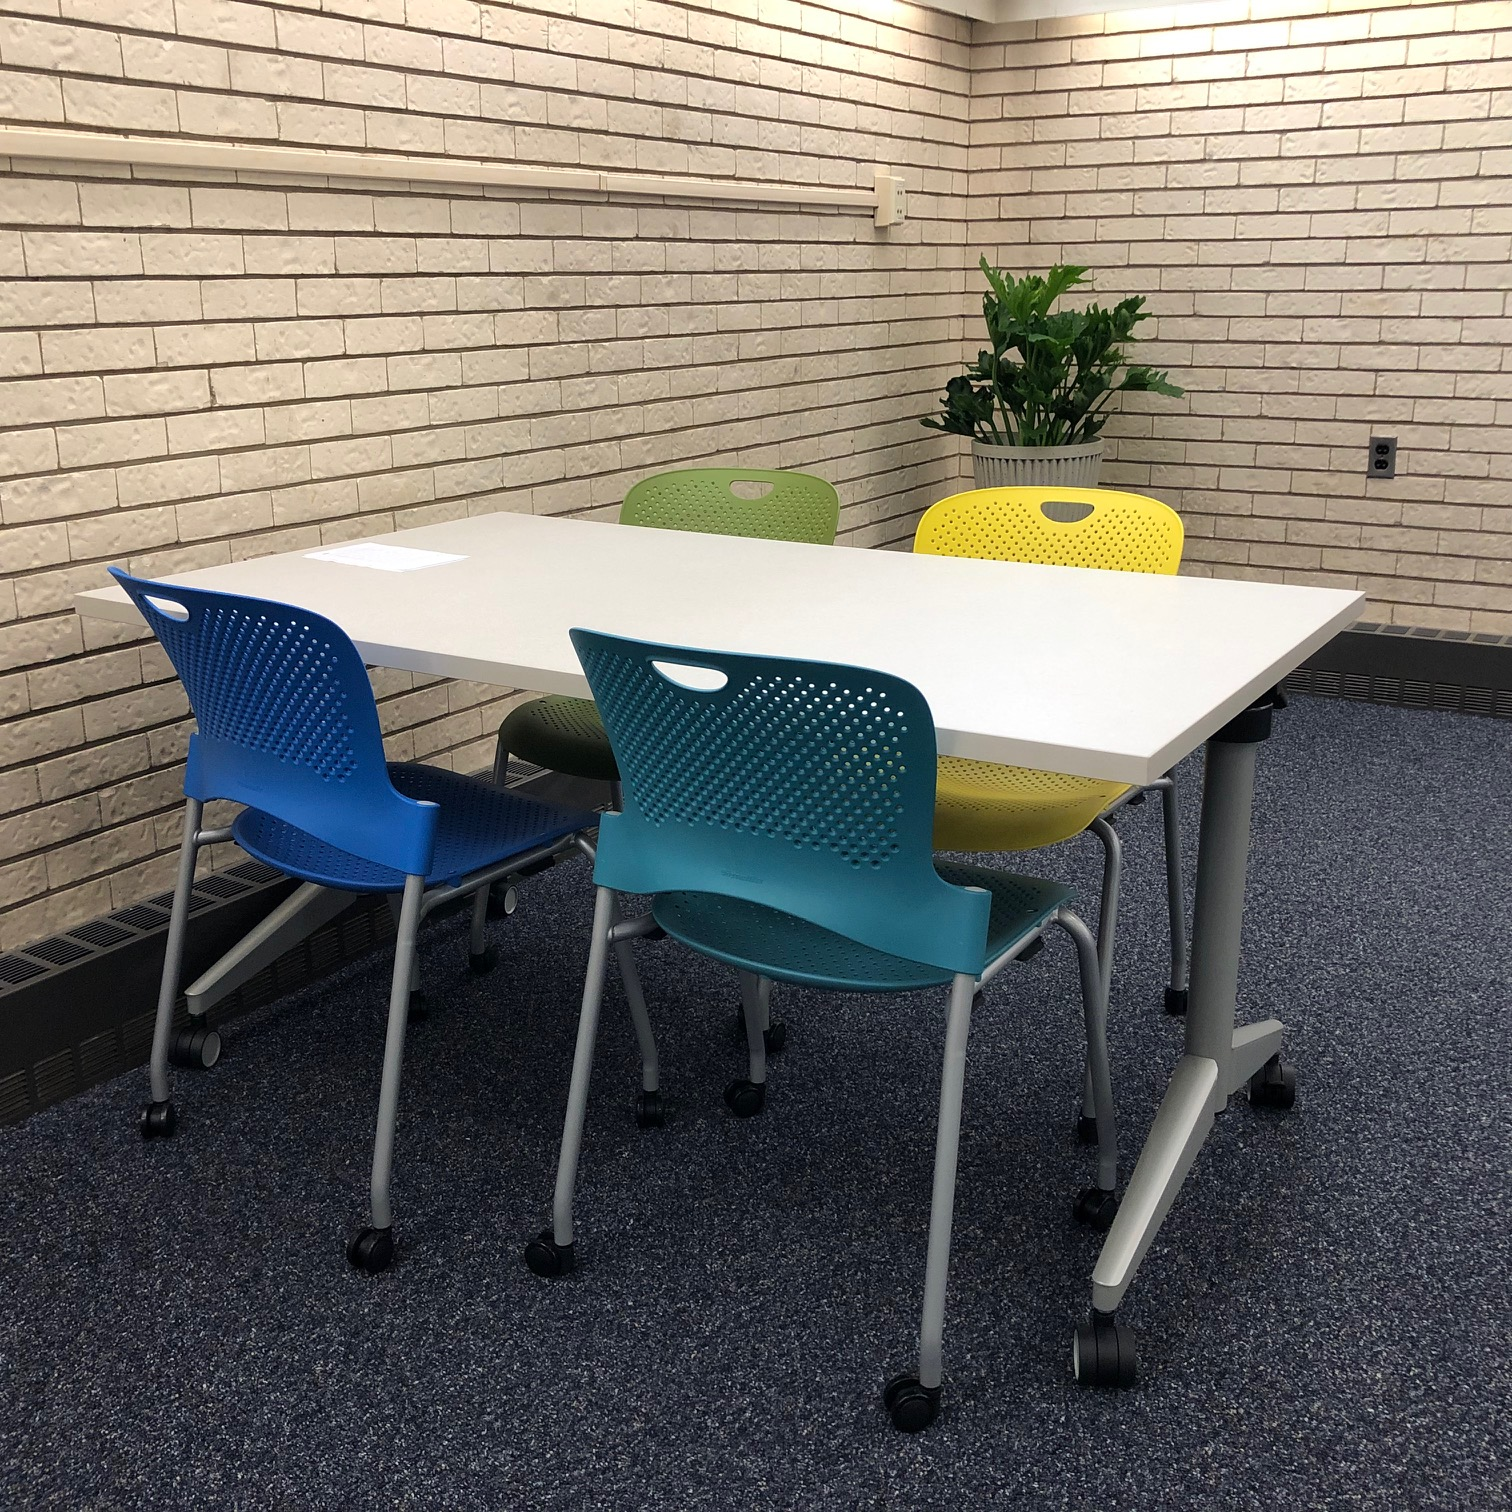 Table & chairs in new Learning Commons